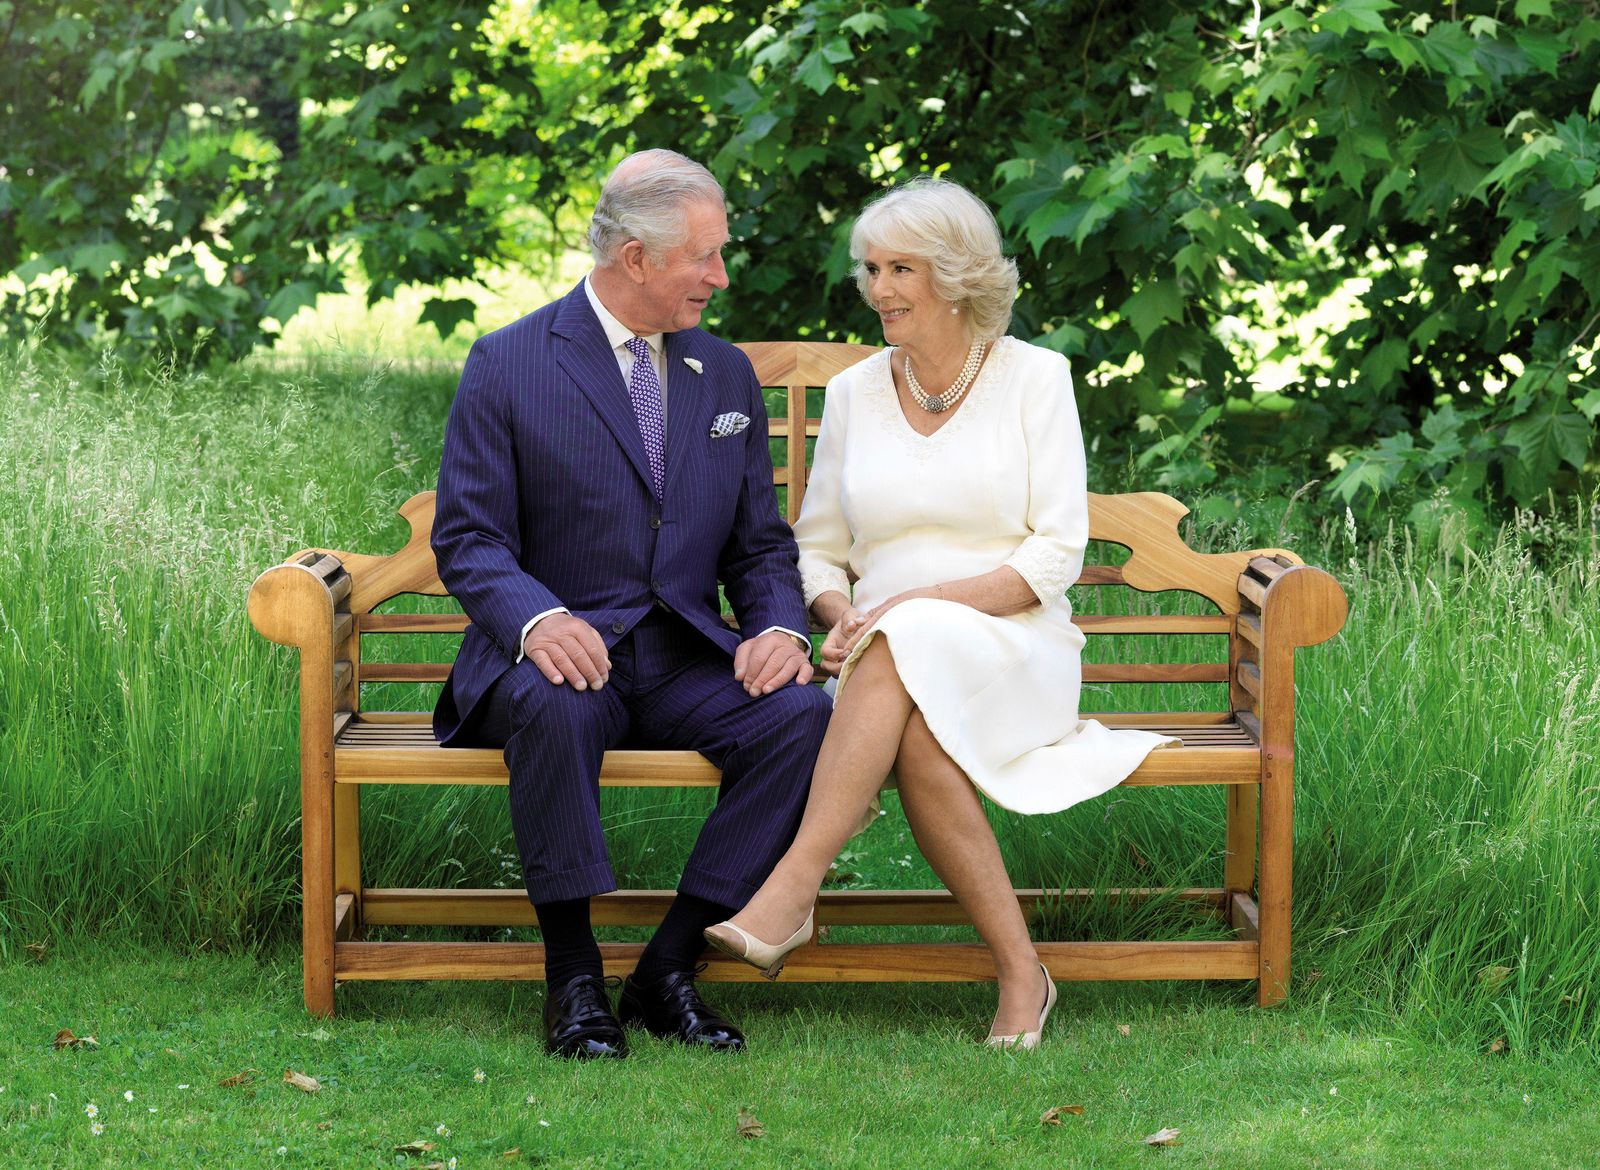 This photo released by Clarence House on Friday Dec. 14, 2018, shows the photo taken by Hugo Burnand of Britain's Prince Charles and Camilla, Duchess of Cornwall in the grounds of Clarence House, London. (Hugo Burnand/Clarence House via AP)